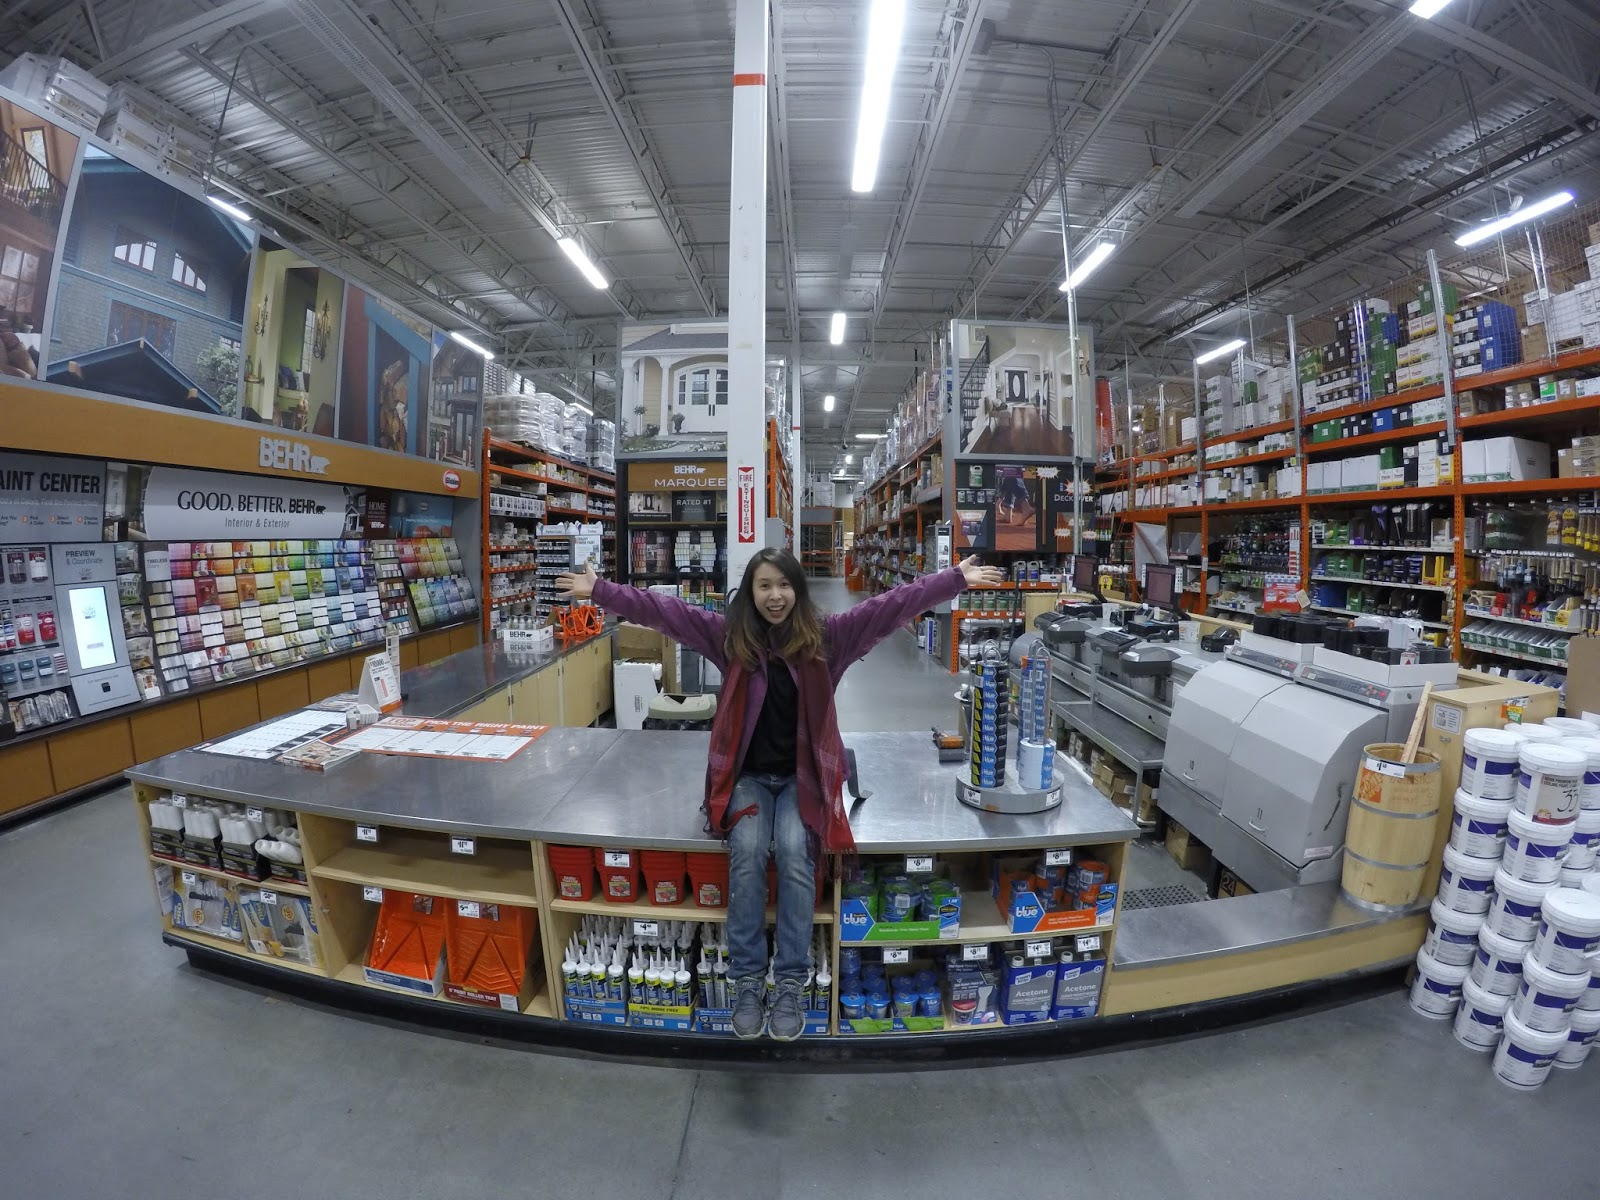 Sales Associate at the Home Depot Paint Department